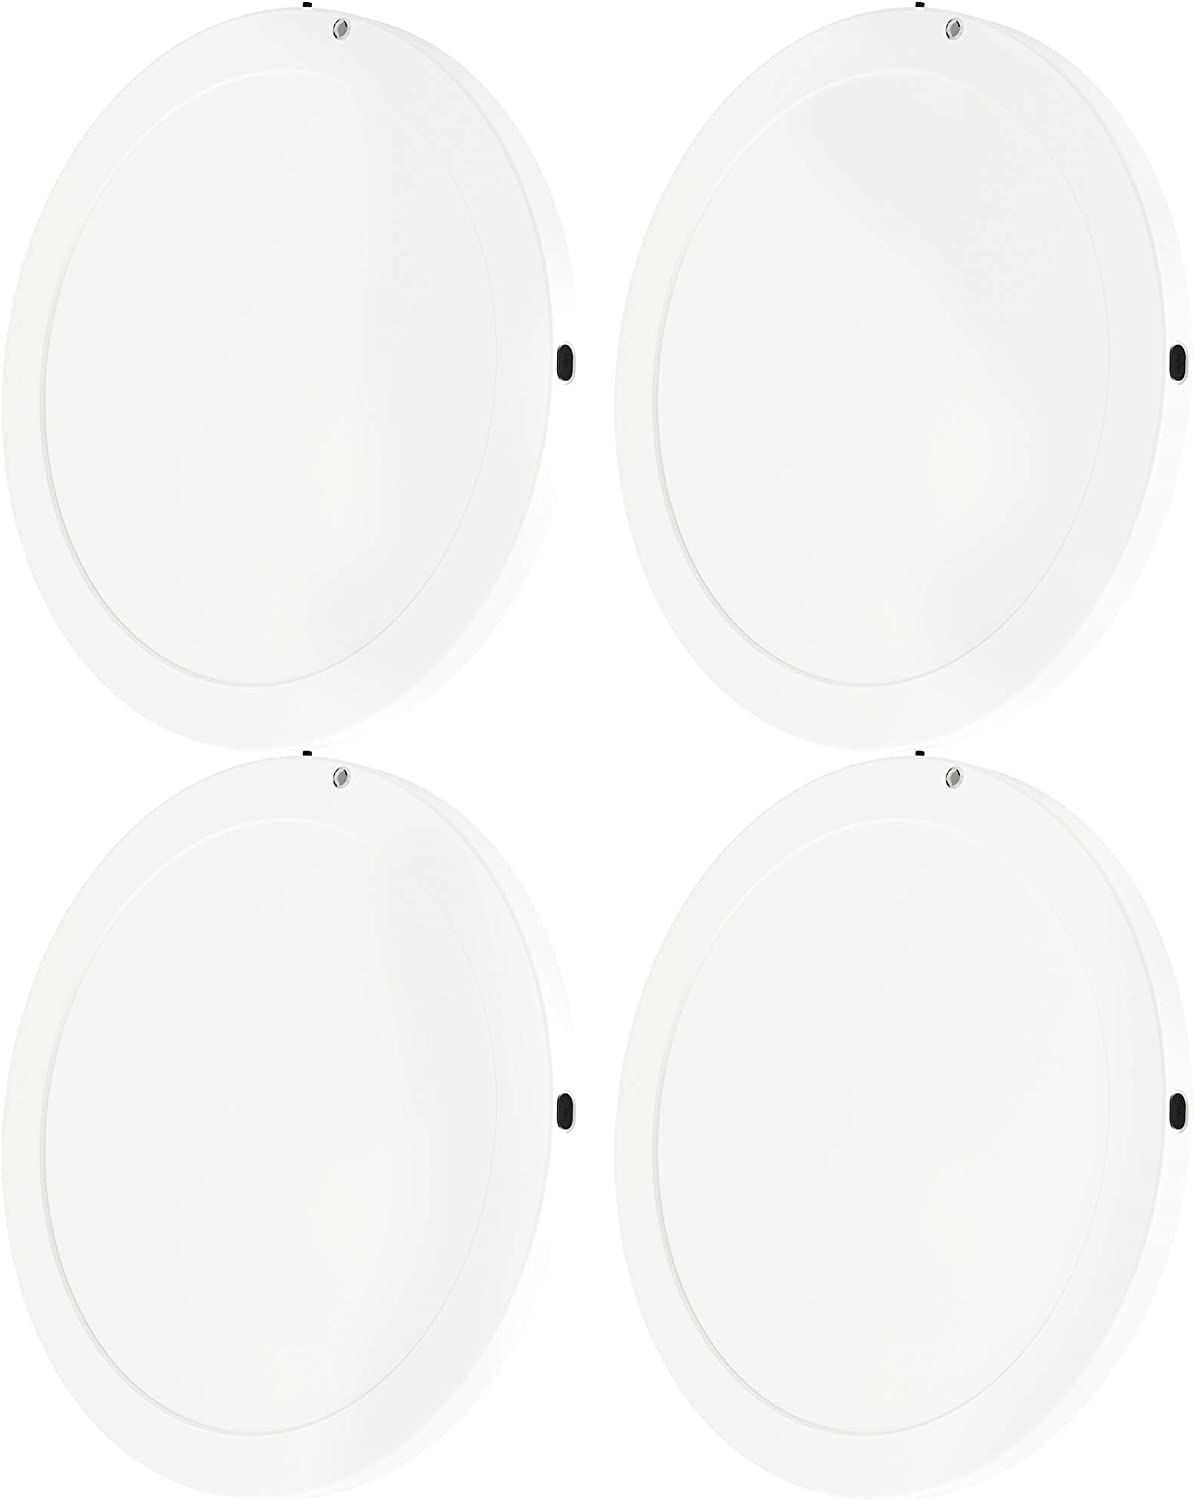 "Sunco Lighting 4 Pack LED Ceiling Light 9"", Motion Sensor, 17W, 5000K Daylight, 1300 LM, Flush Mount Fixture, Ideal for Pantries, Closets, Hallways, Stairs, Laundry Rooms - UL, Energy Star"